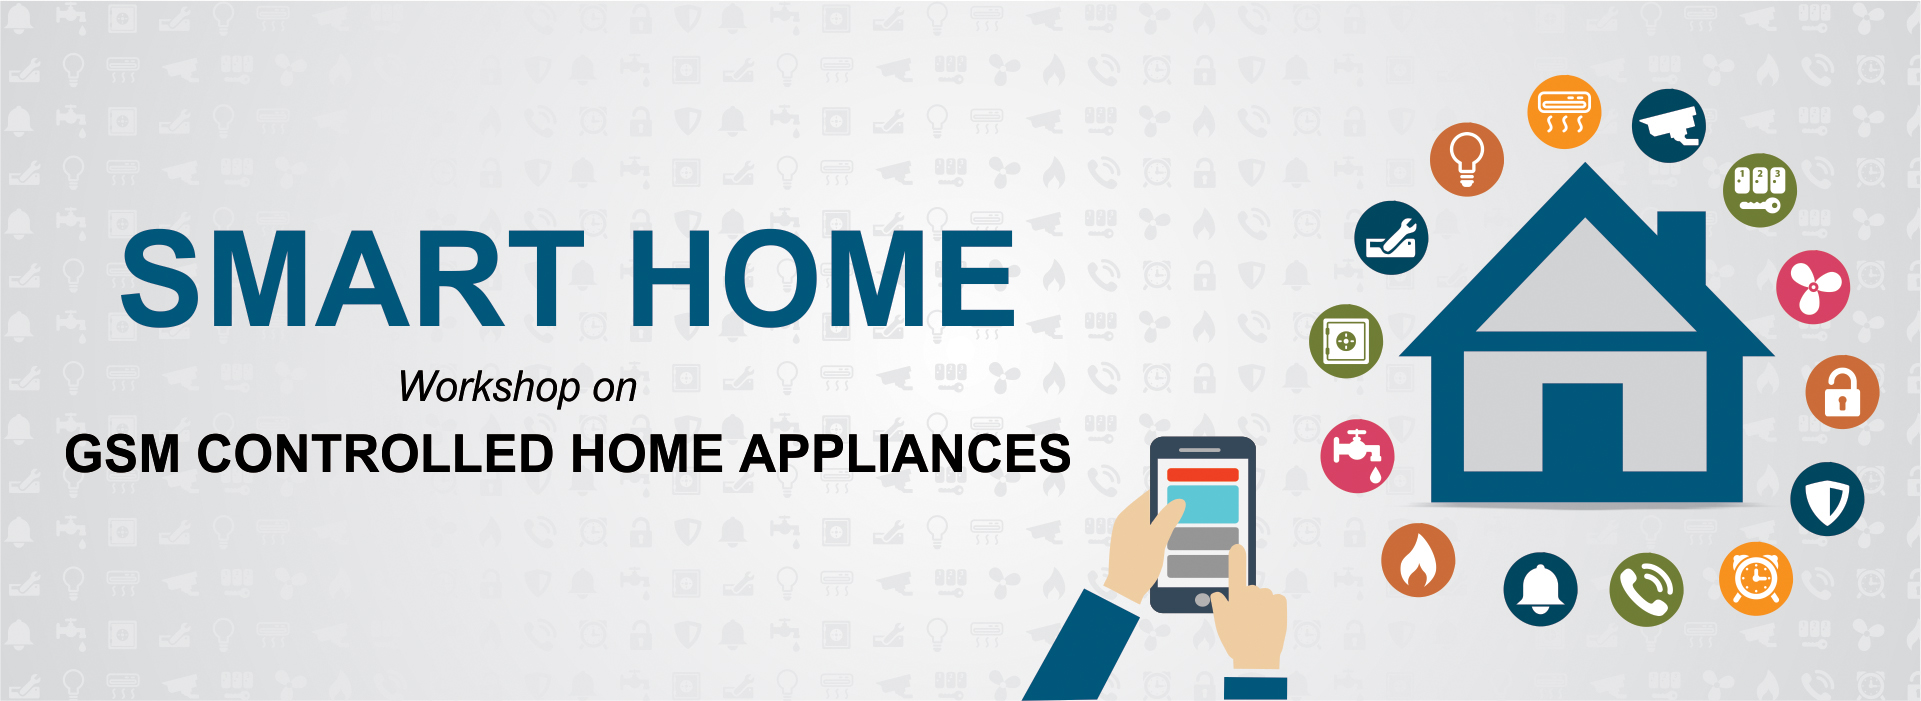 Smart Home – Workshop on GSM Controlled Home Appliances